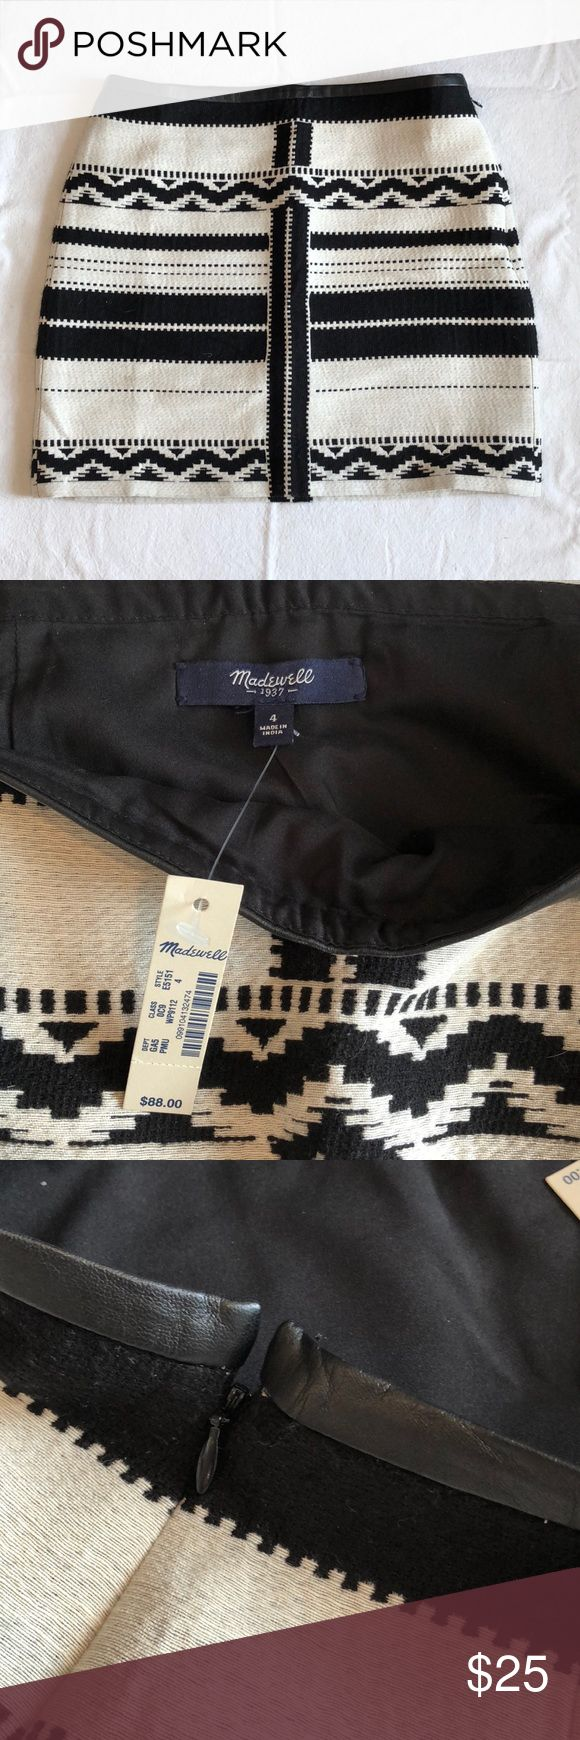 Madewell Black Gamine Mini Skirt In Geo Jacquard Super cute size 4 mini skirt - NEVER WORN, NEW WITH TAGS! Features beautiful black and white pattern and leather trim. Side zipper with hook and eye closure. Madewell Skirts Mini